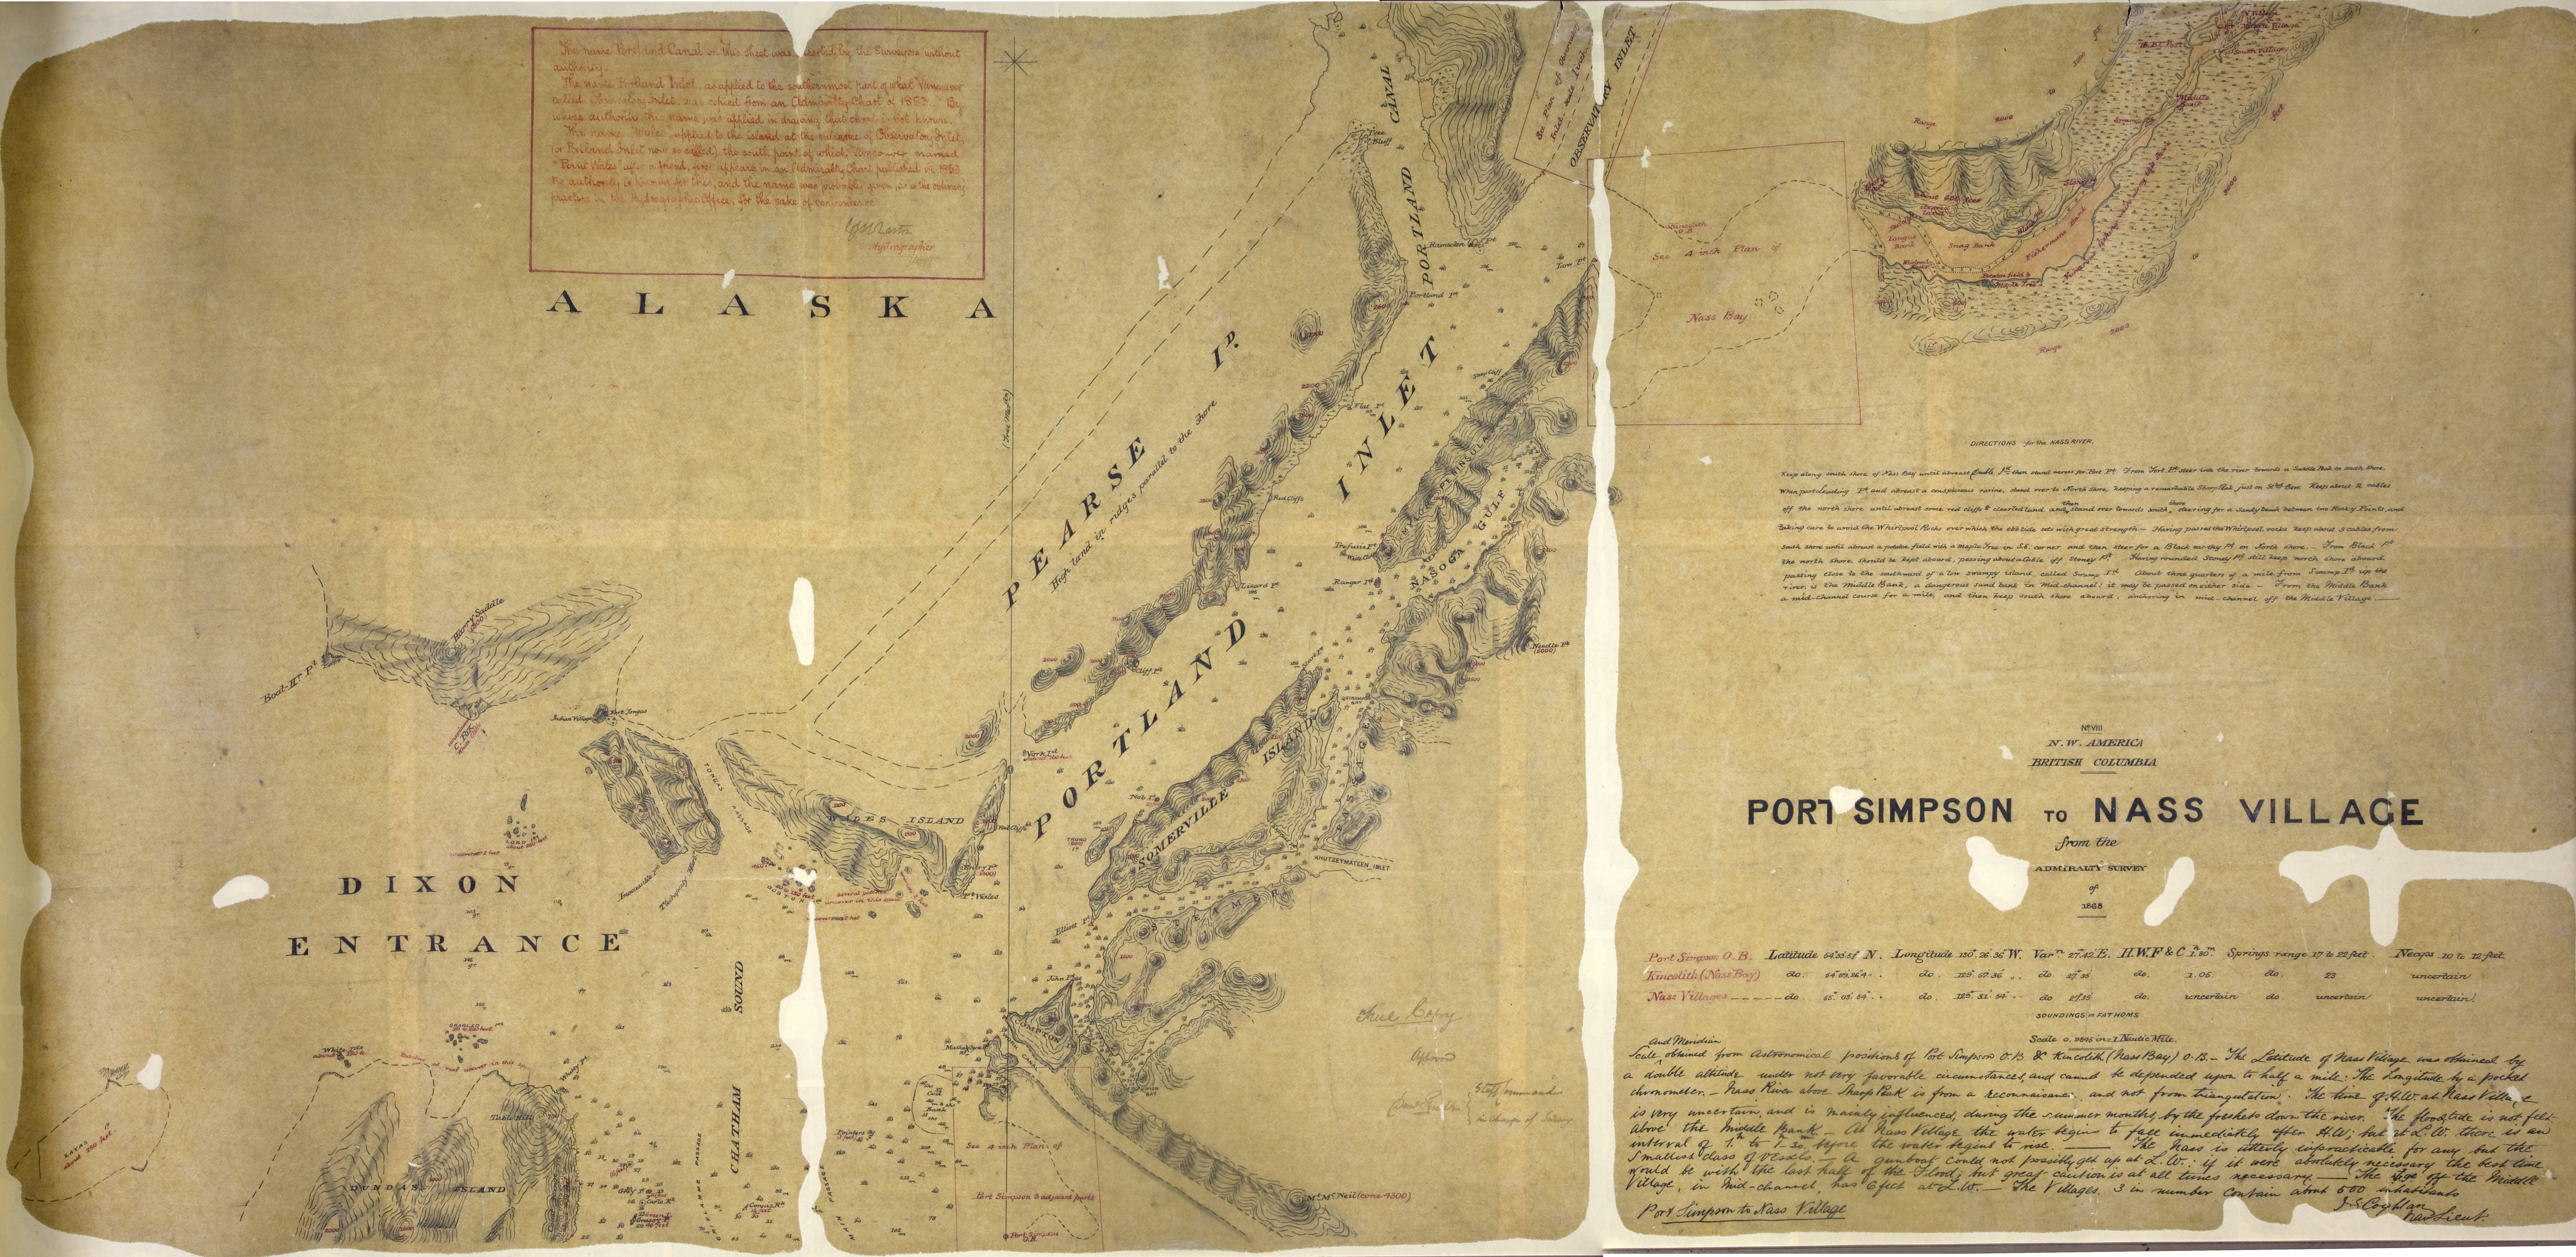 Port Simpson to Nass Village, from the Admiralty survey of 1868